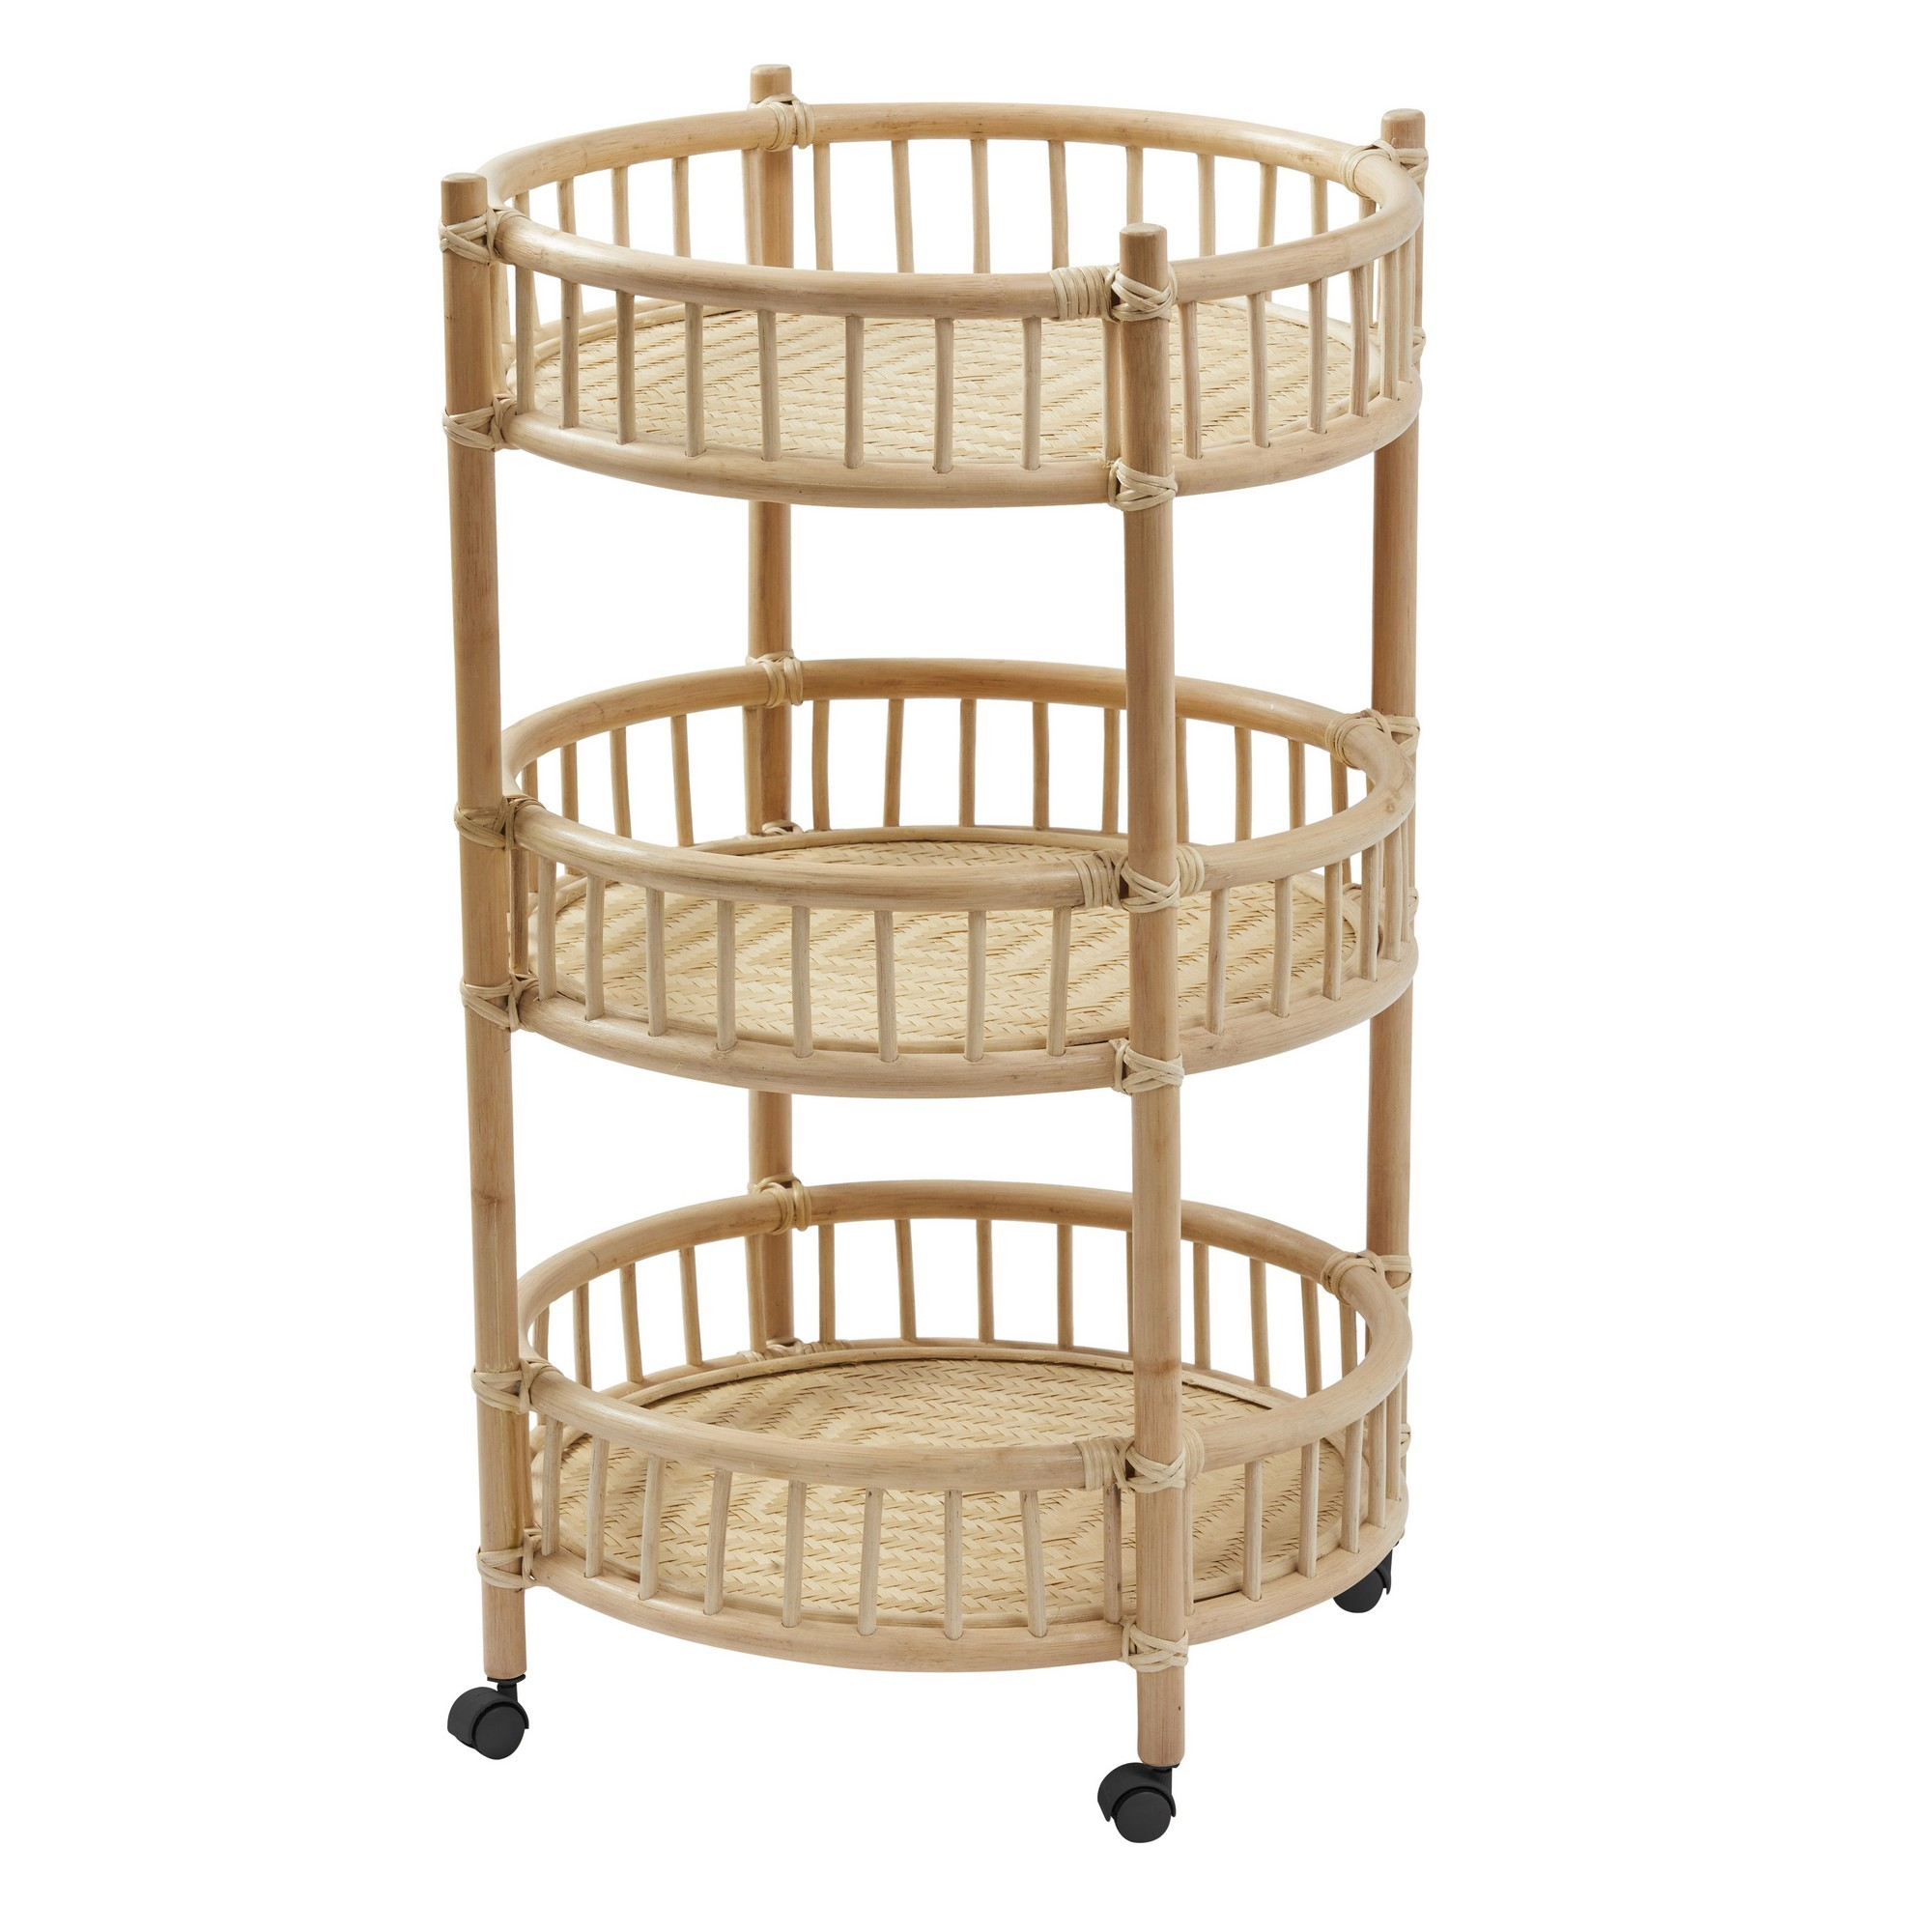 Porton Rattan Drinks Trolley